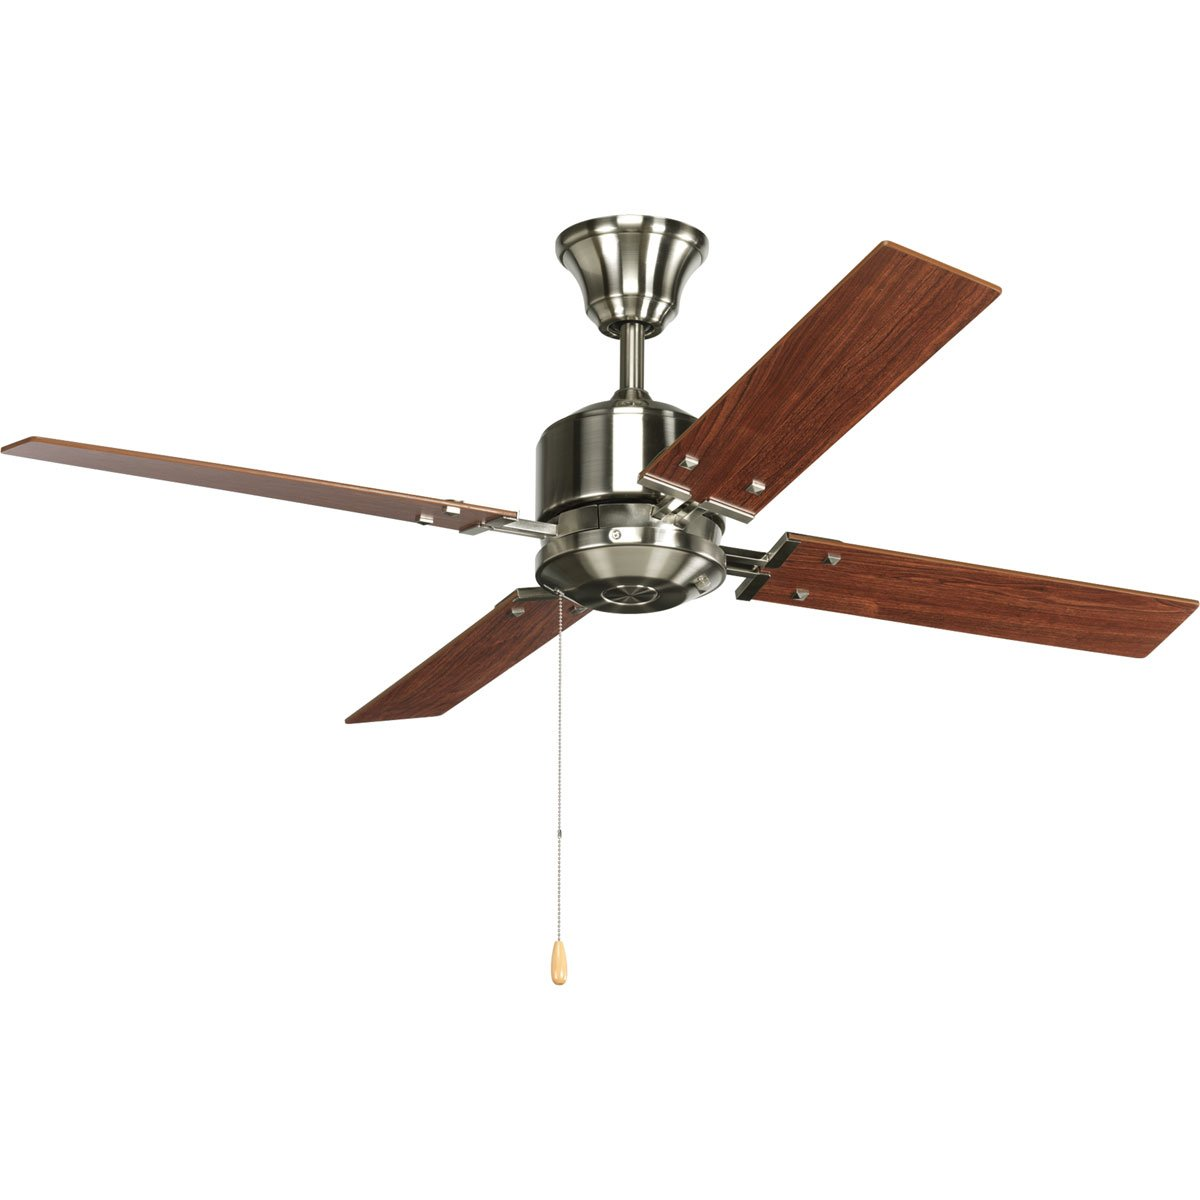 Progress Lighting P2531-20 52-Inch 4-Blade Ceiling Fan